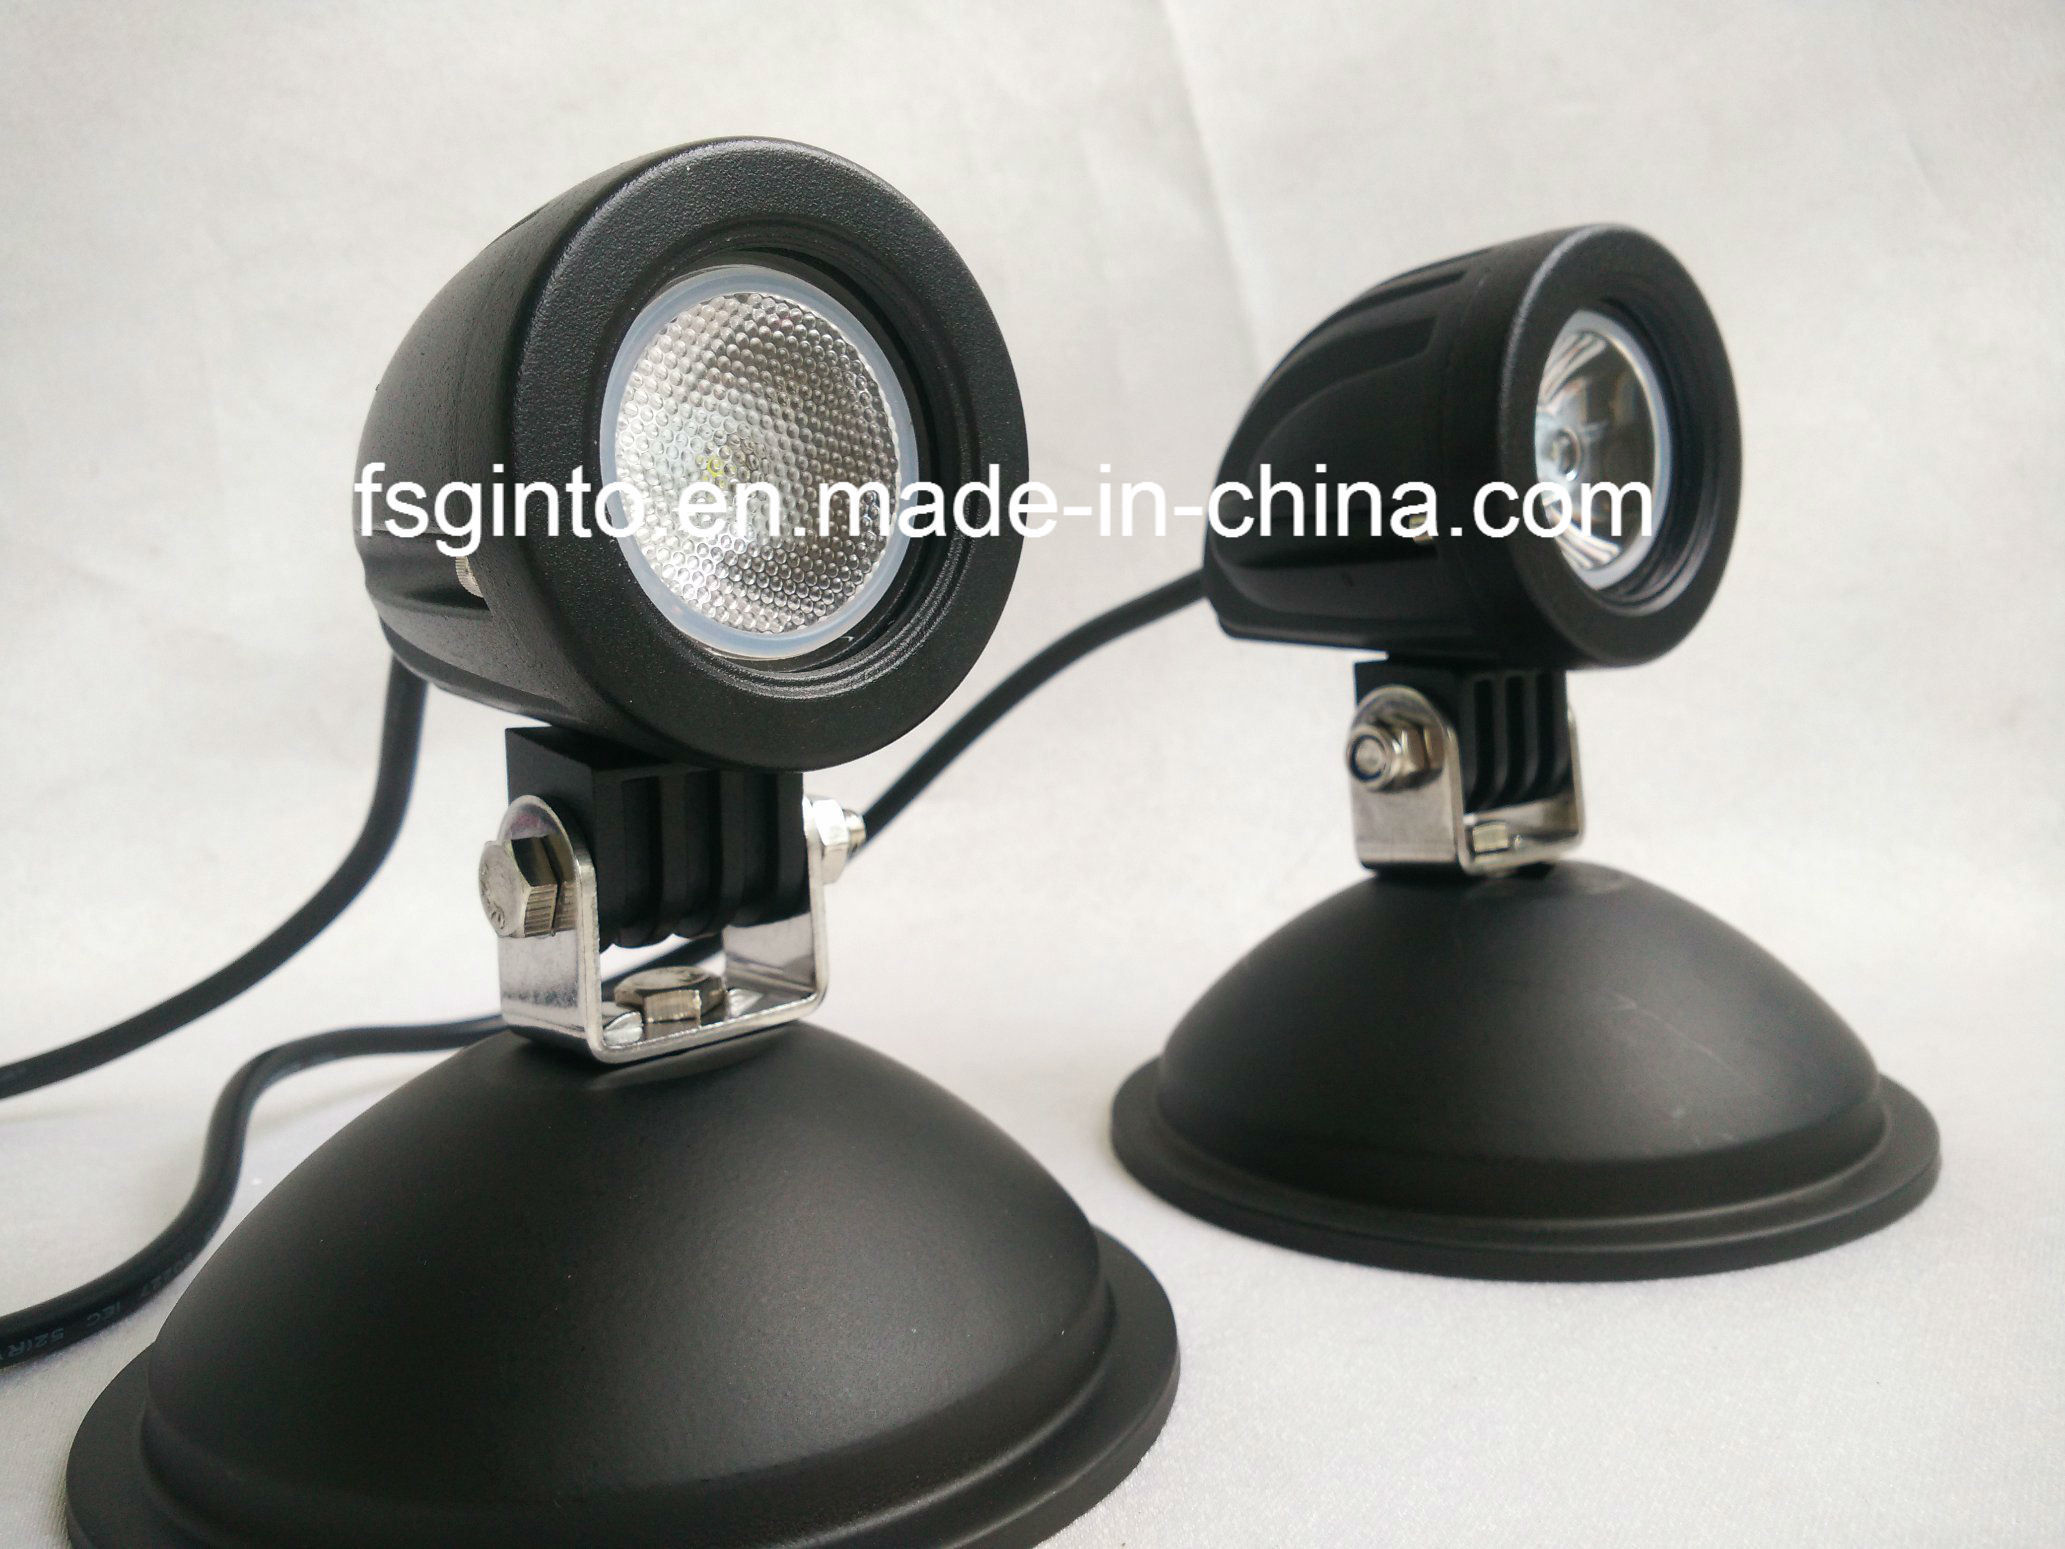 10W Spot/Flood LED Driving Work Light Motorcycle Parts pictures & photos